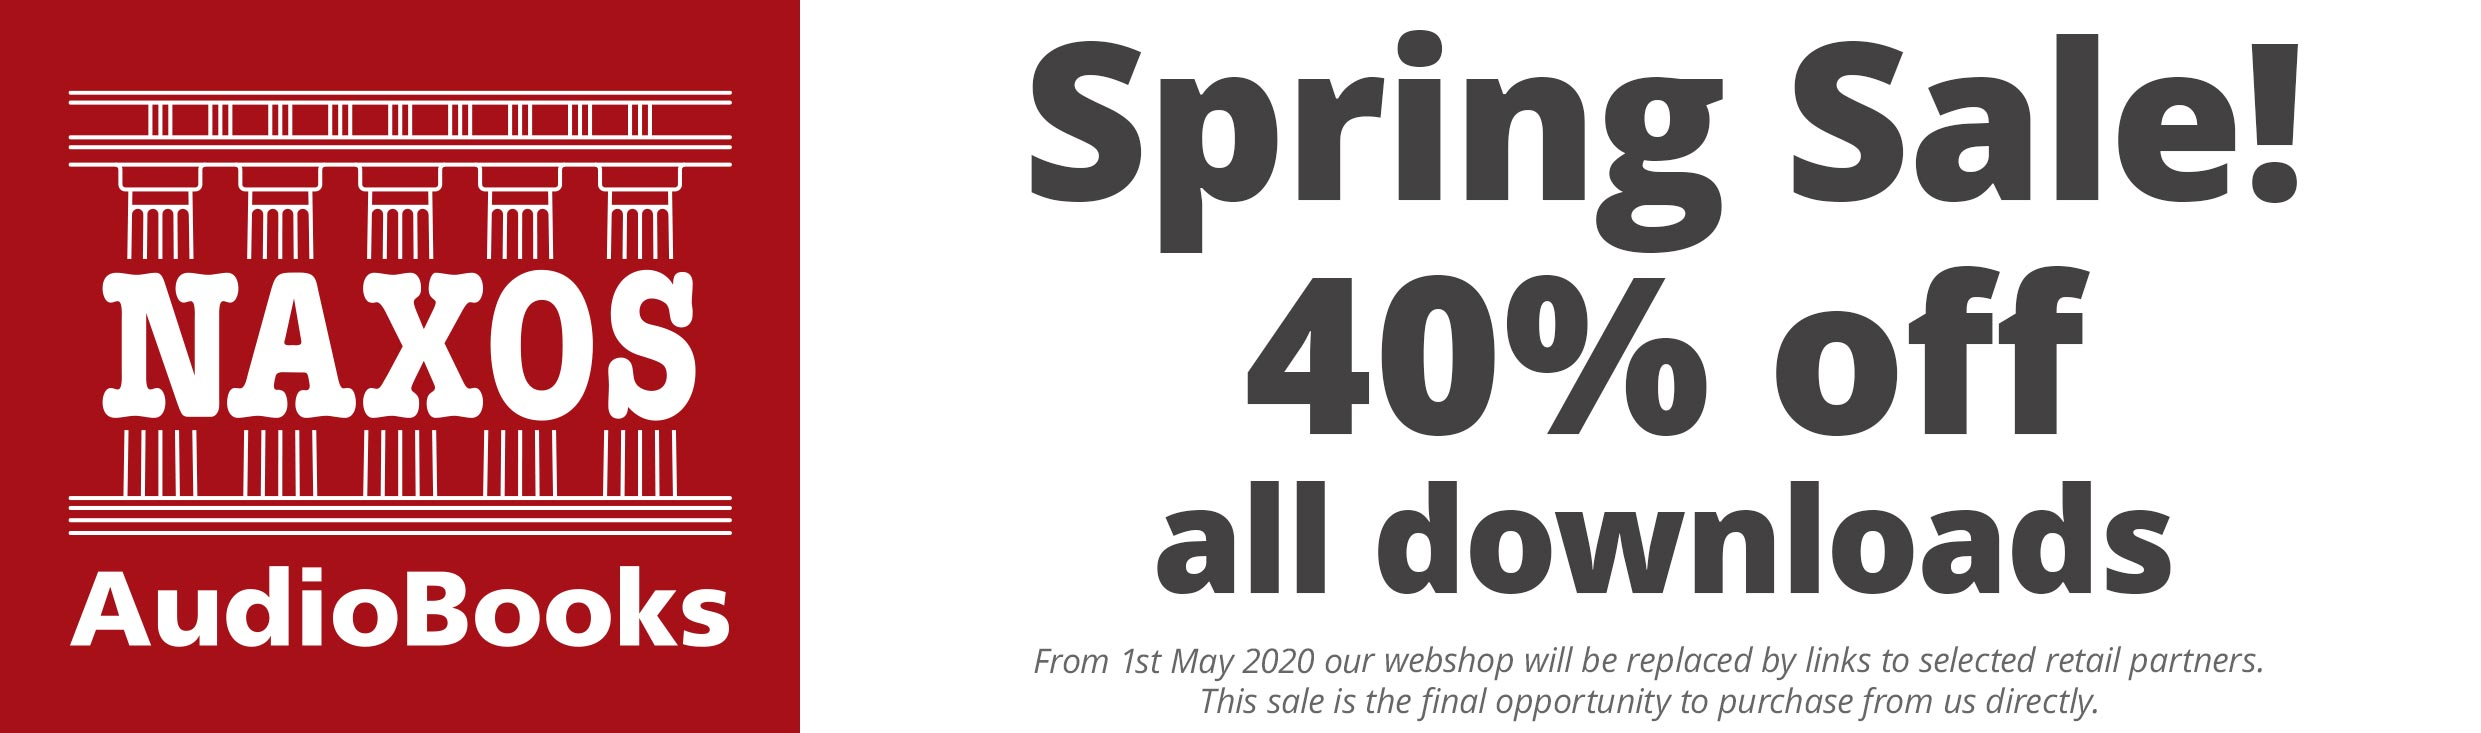 Spring Sale! 40% off all downloads!